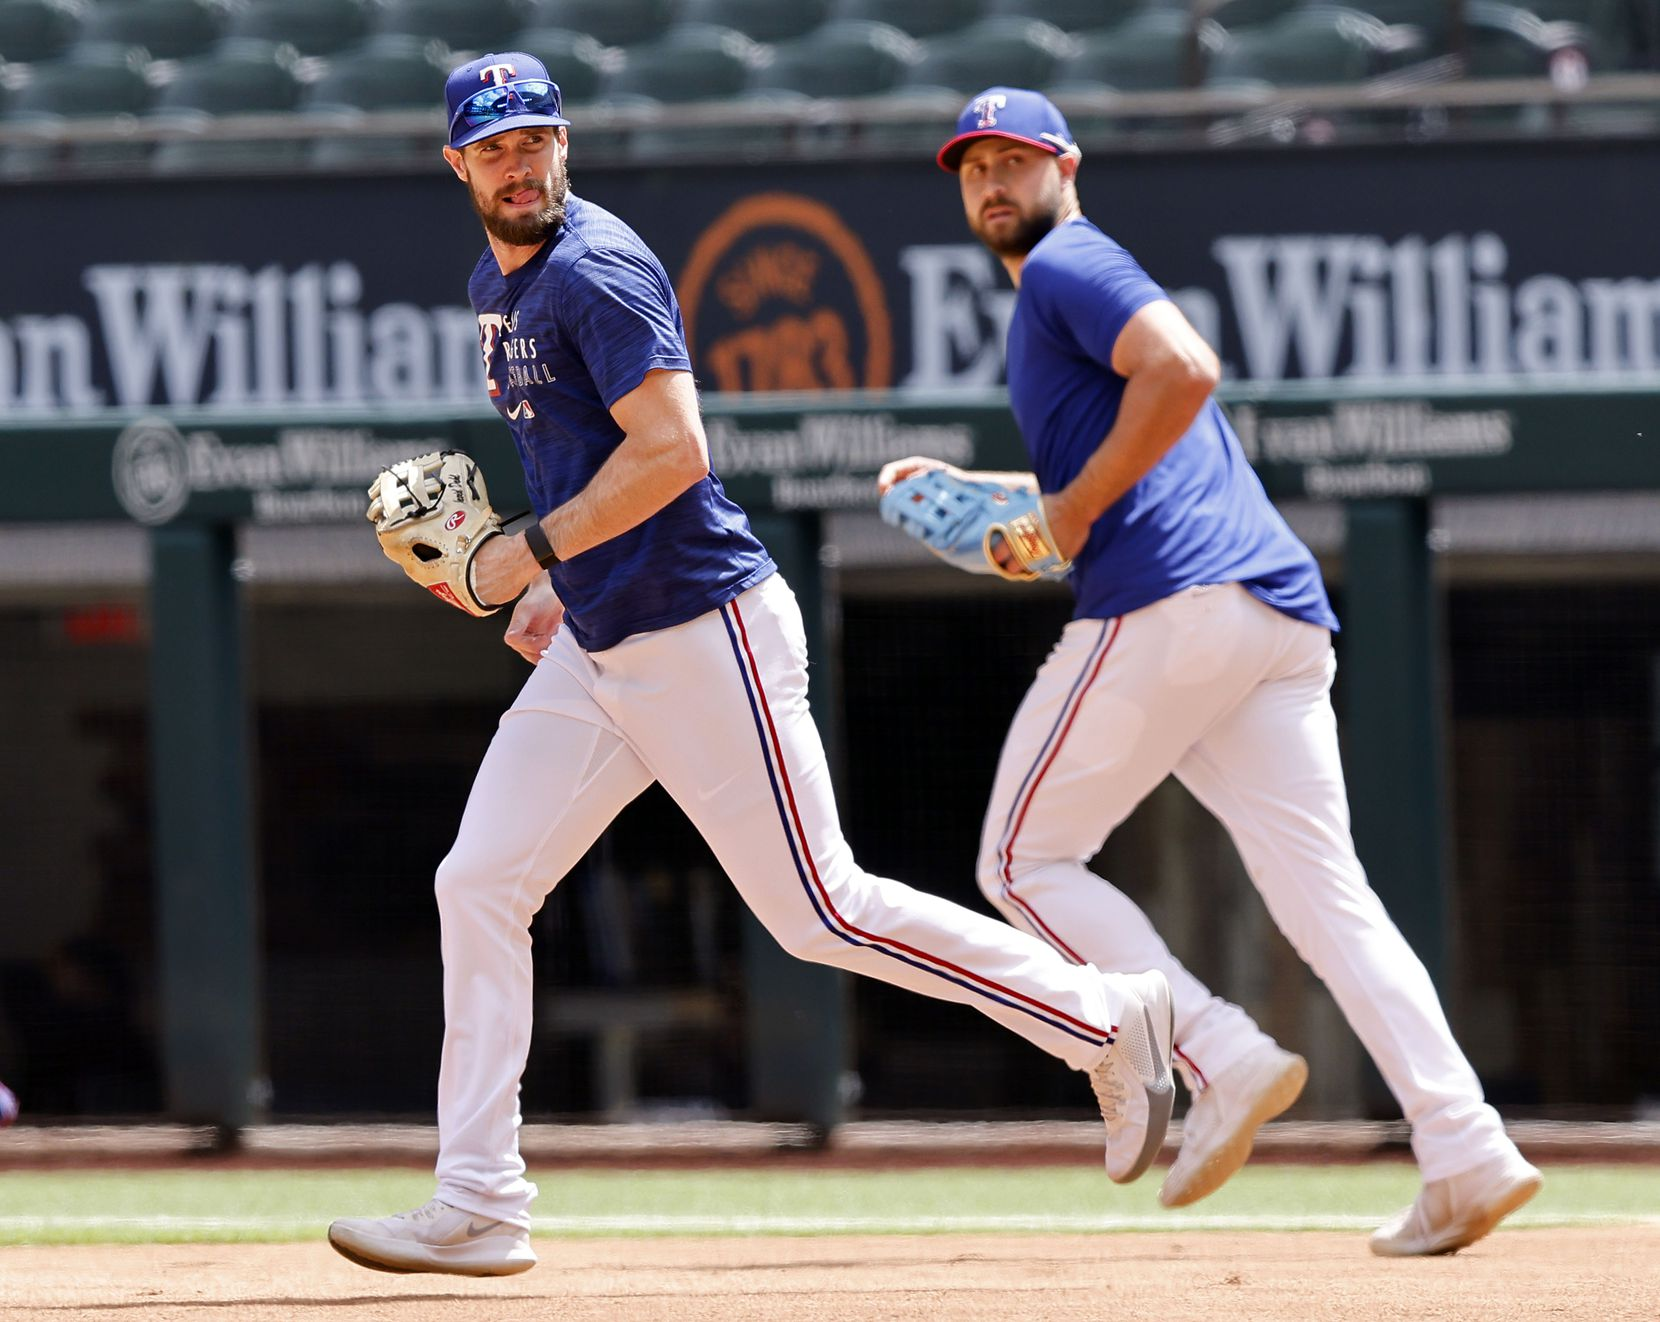 Texas Rangers David Dahl (left) and Joey Gallo take the field for batting practice before facing the Toronto Blue Jays on Opening Day at Globe Life Field in Arlington, Monday, April 5, 2021. The Rangers are facing the Toronto Blue Jays in the home opener. (Tom Fox/The Dallas Morning News)